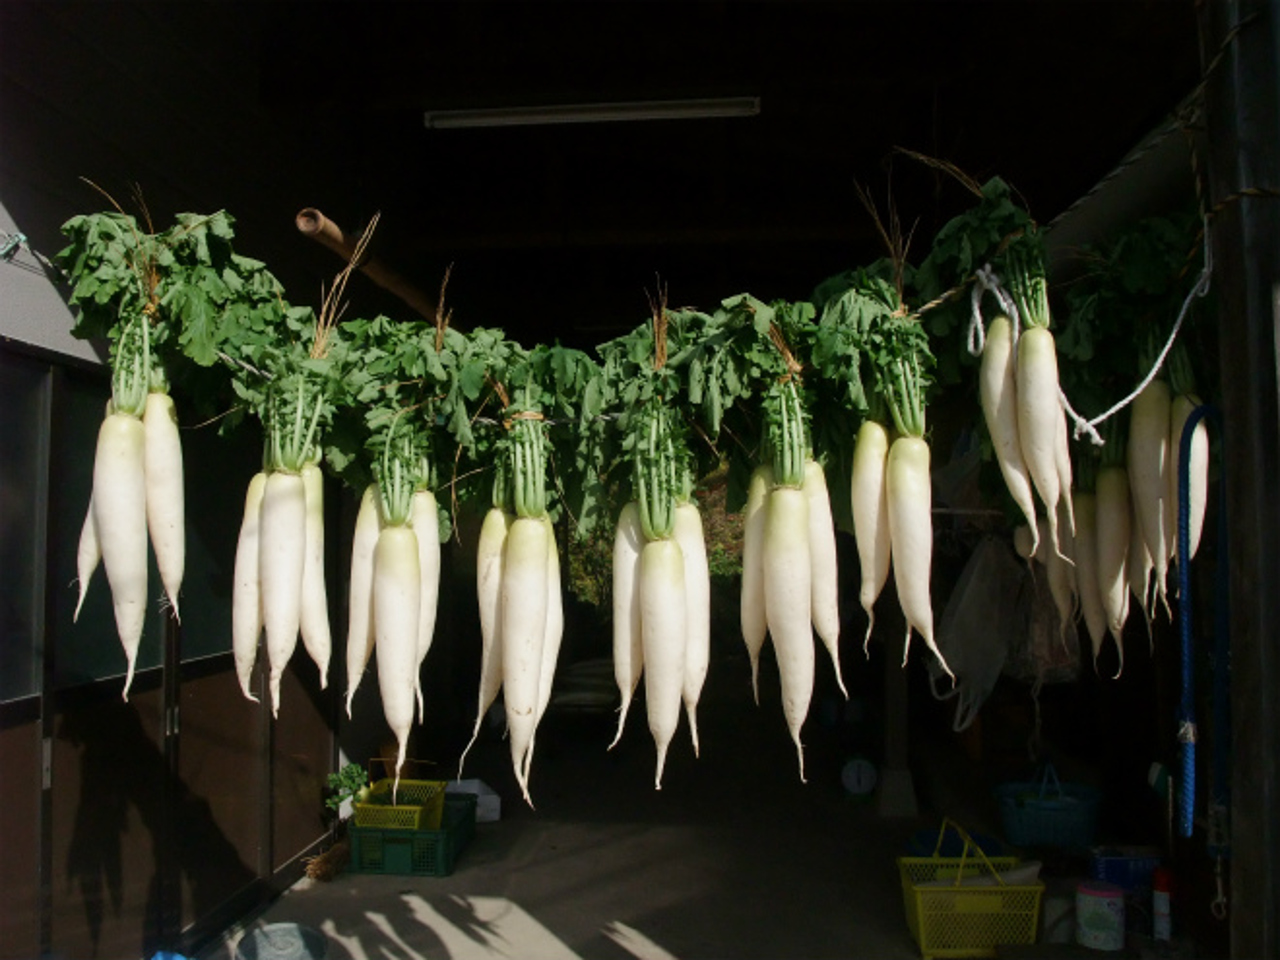 Radishes hung to dry in the sun in Yonekawa , Tome, Japan